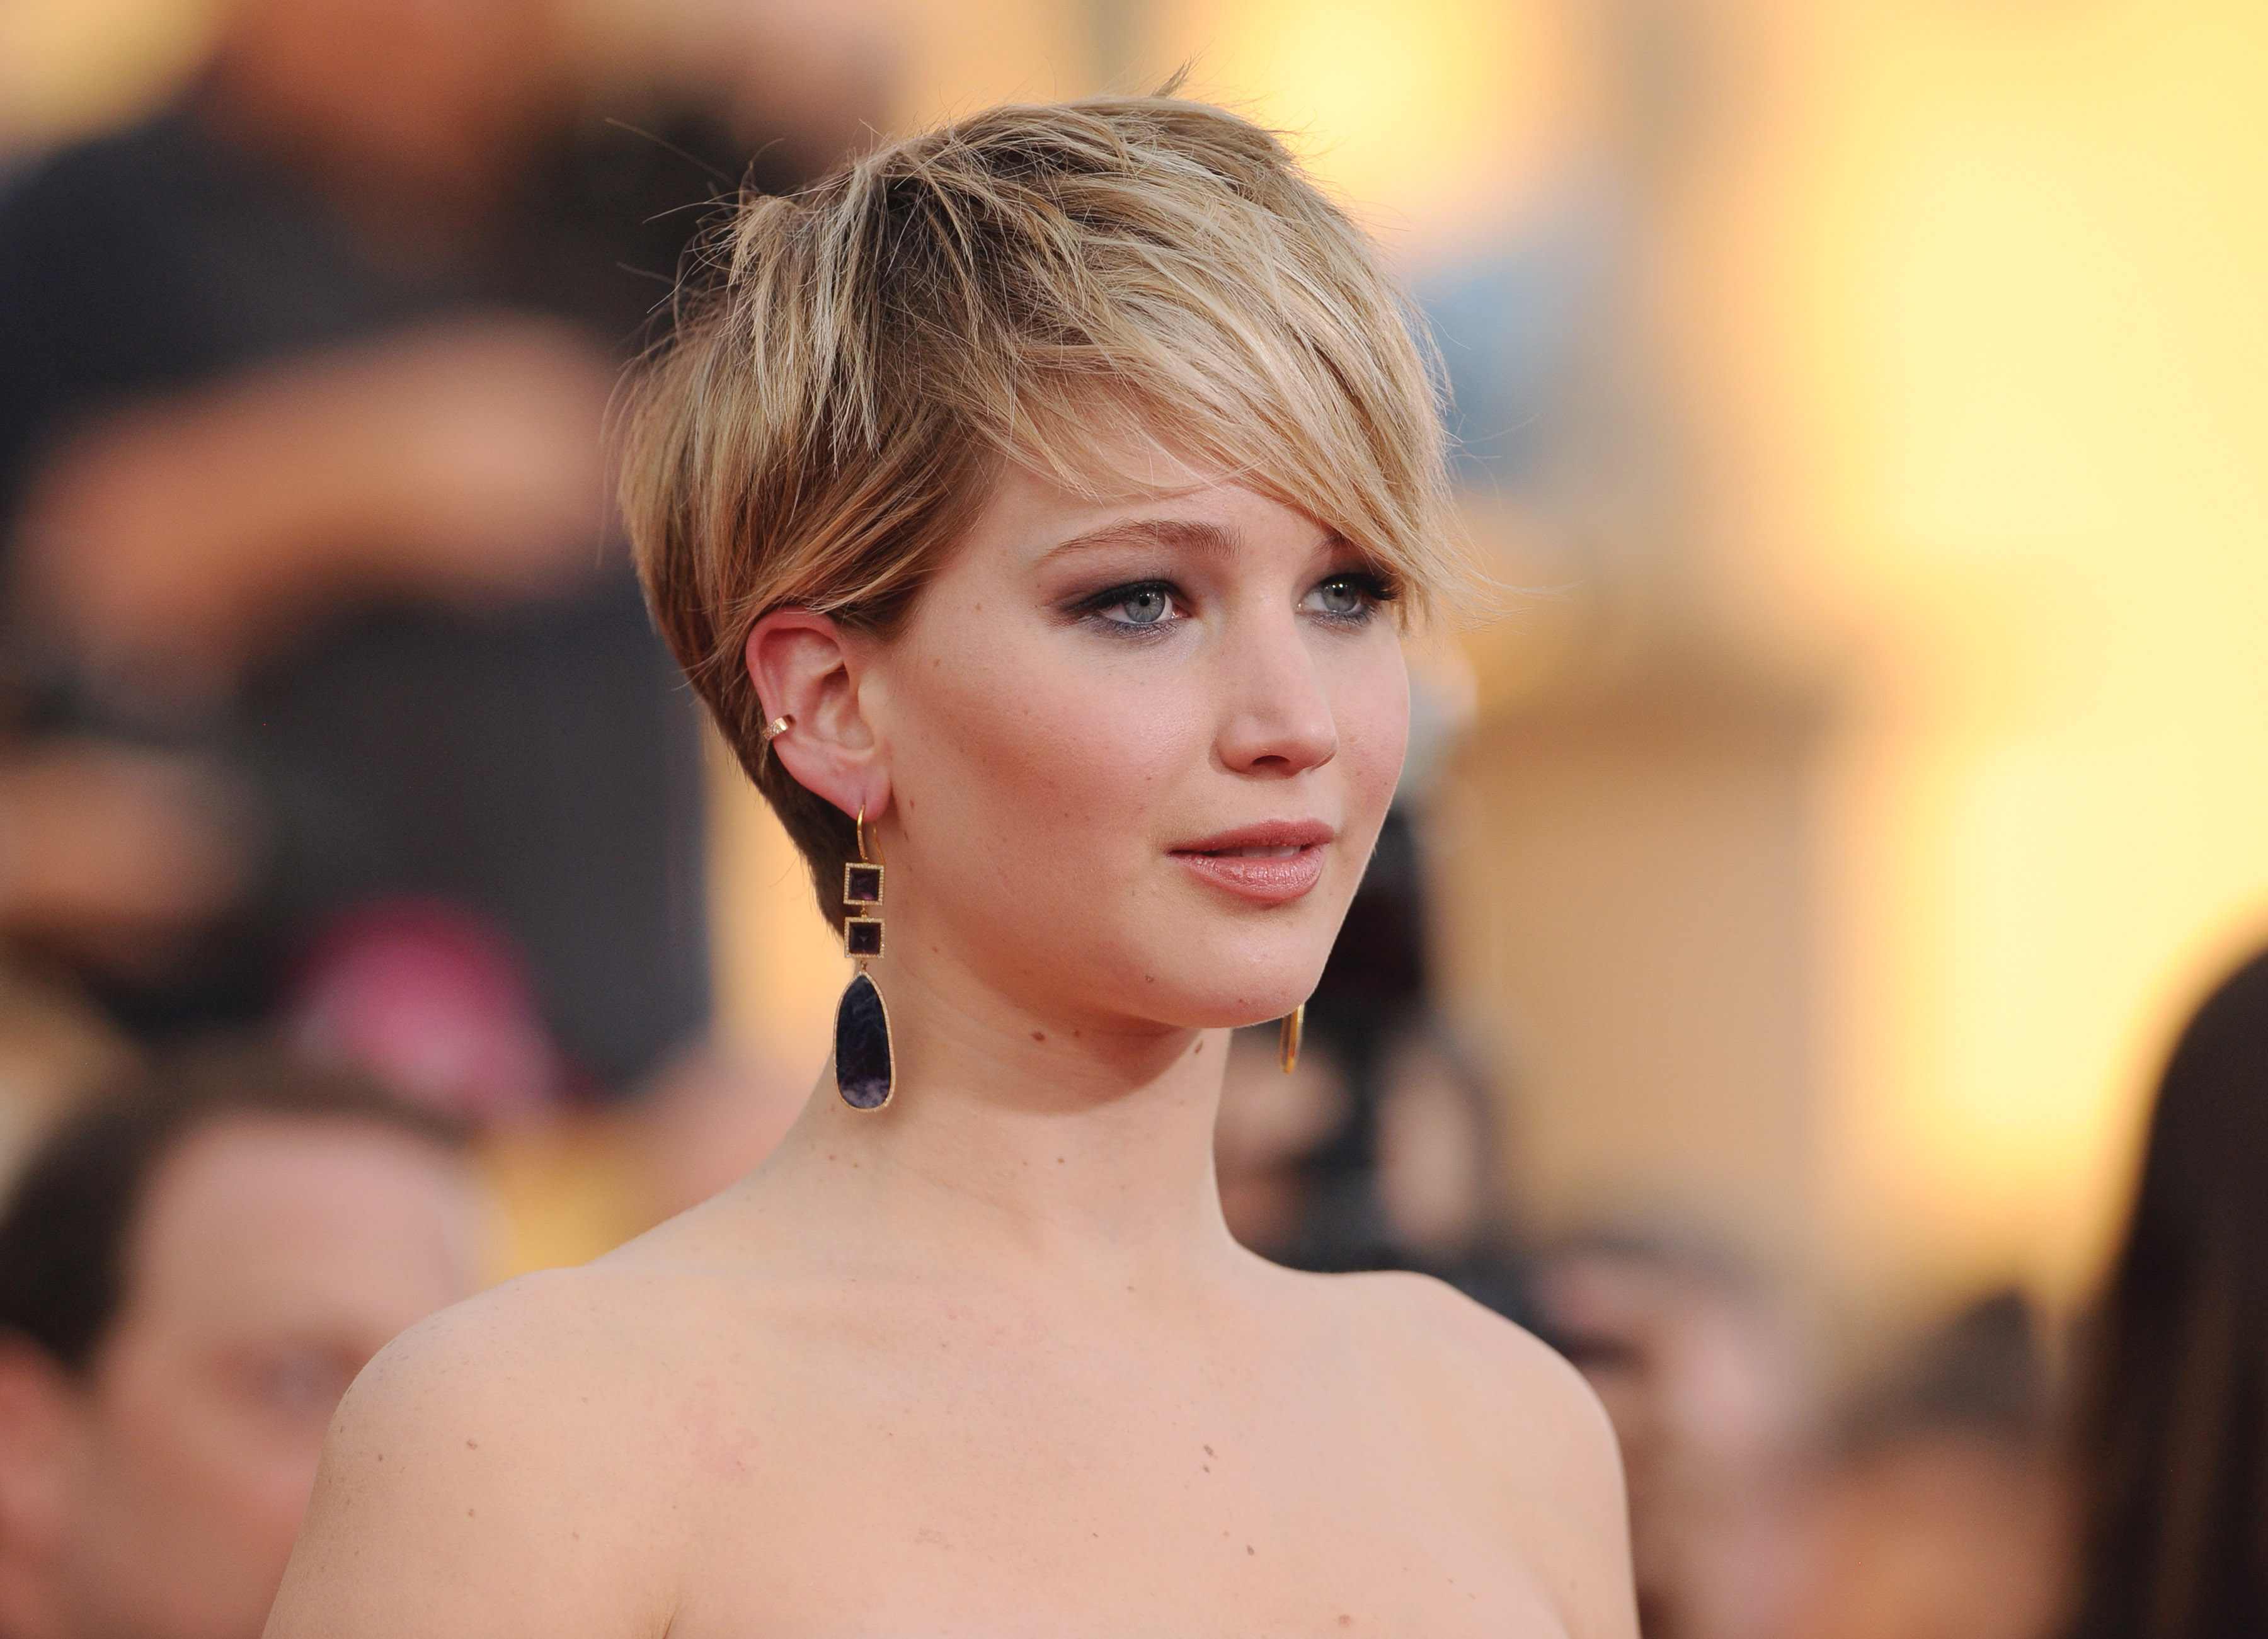 35 Fabulous Short Haircuts For Thick Hair For Very Short Haircuts For Women With Thick Hair (View 4 of 25)